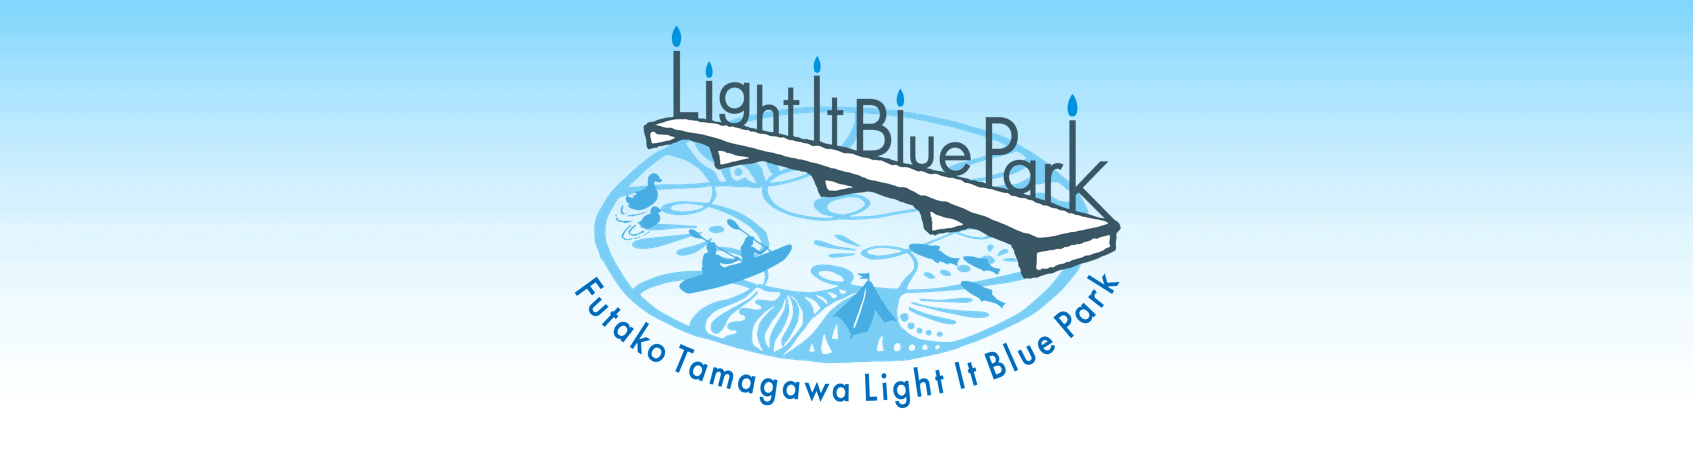 Futako Tamagawa Light It Blue Park